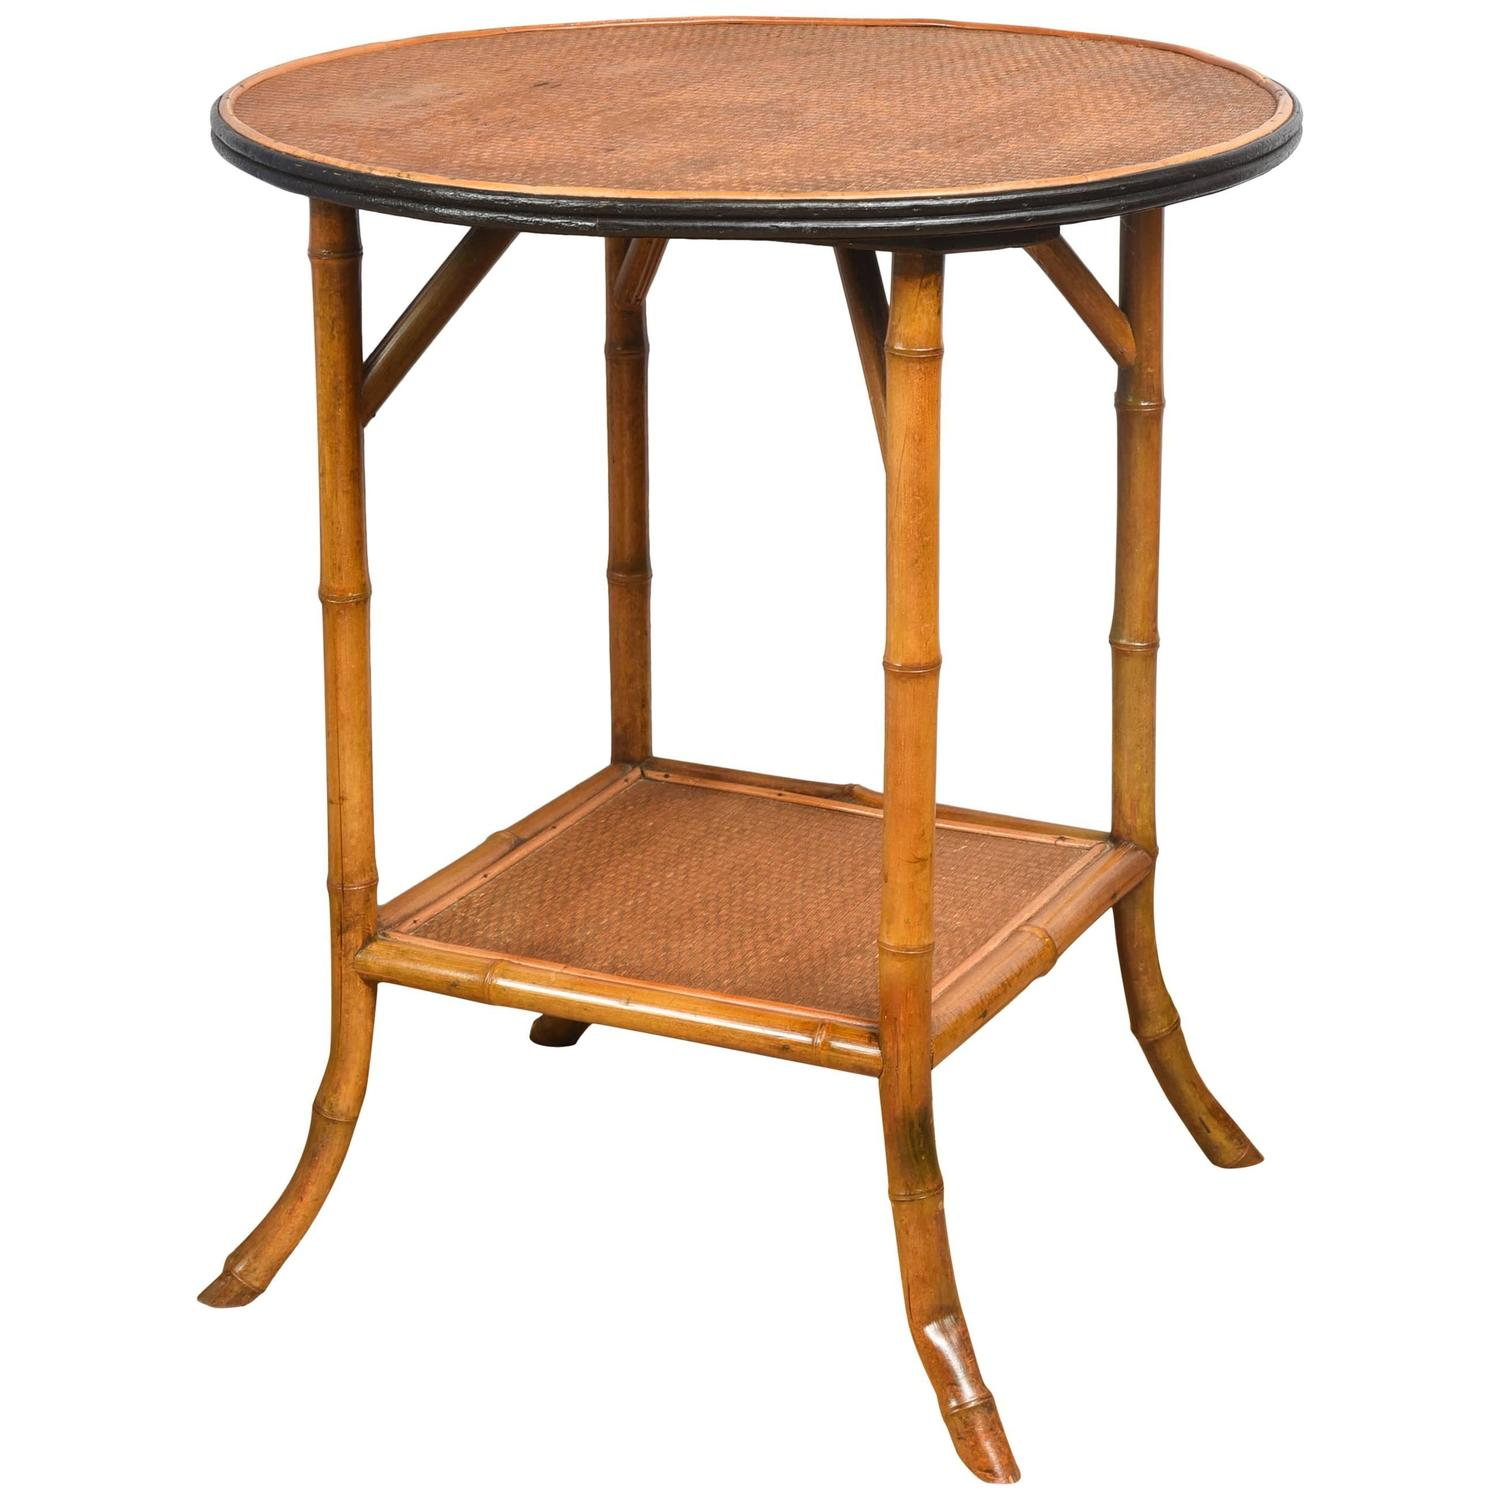 Bamboo and rattan round side table at 1stdibs for Bamboo side table